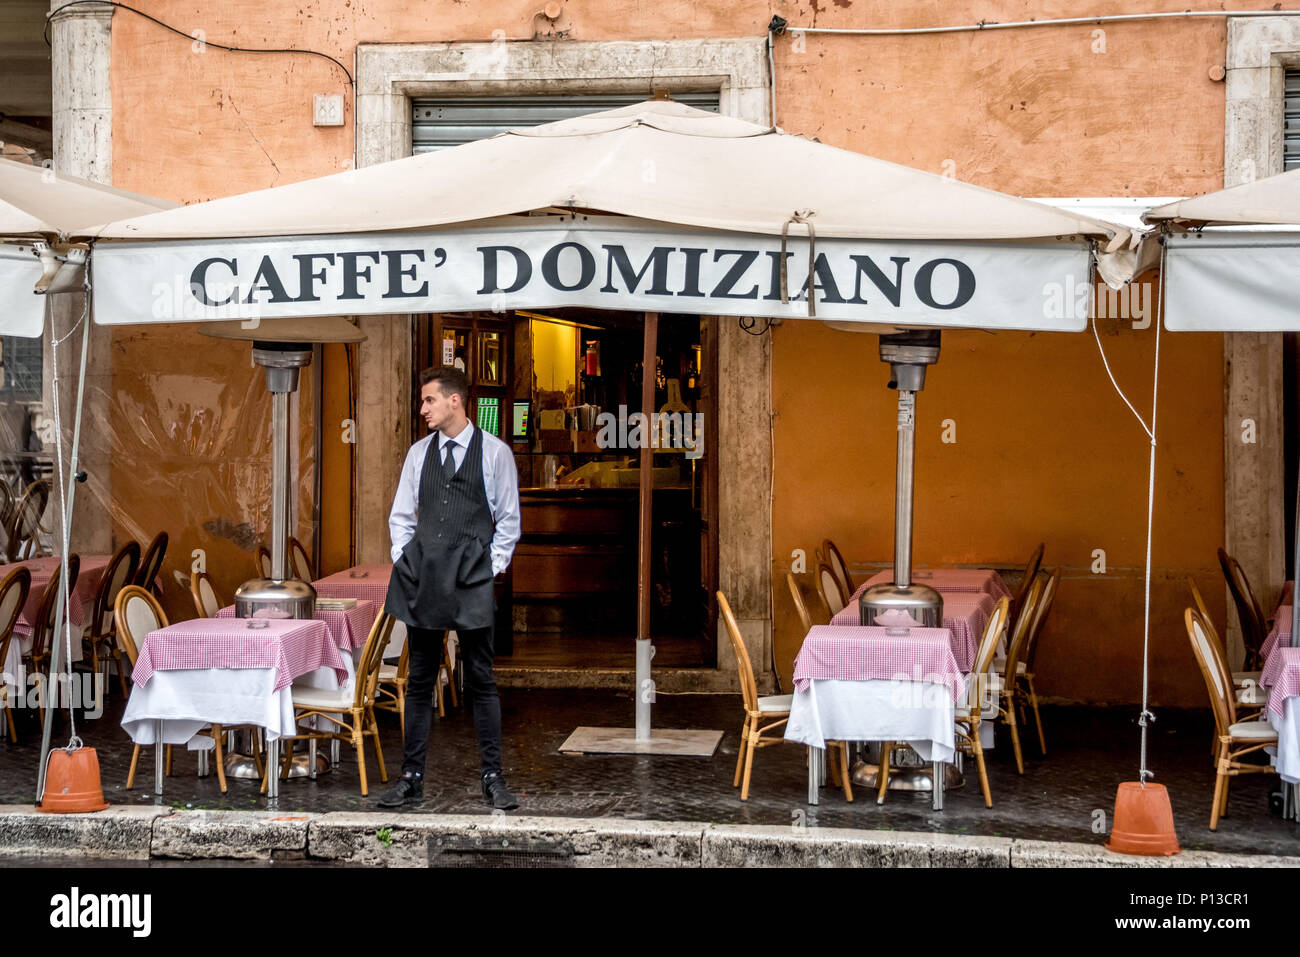 Italian waiter stands outside Caffe Domiziano on Piazza Navona waiting for customers on a rainy day, empty tables, outdoor dining, restaurant name. - Stock Image